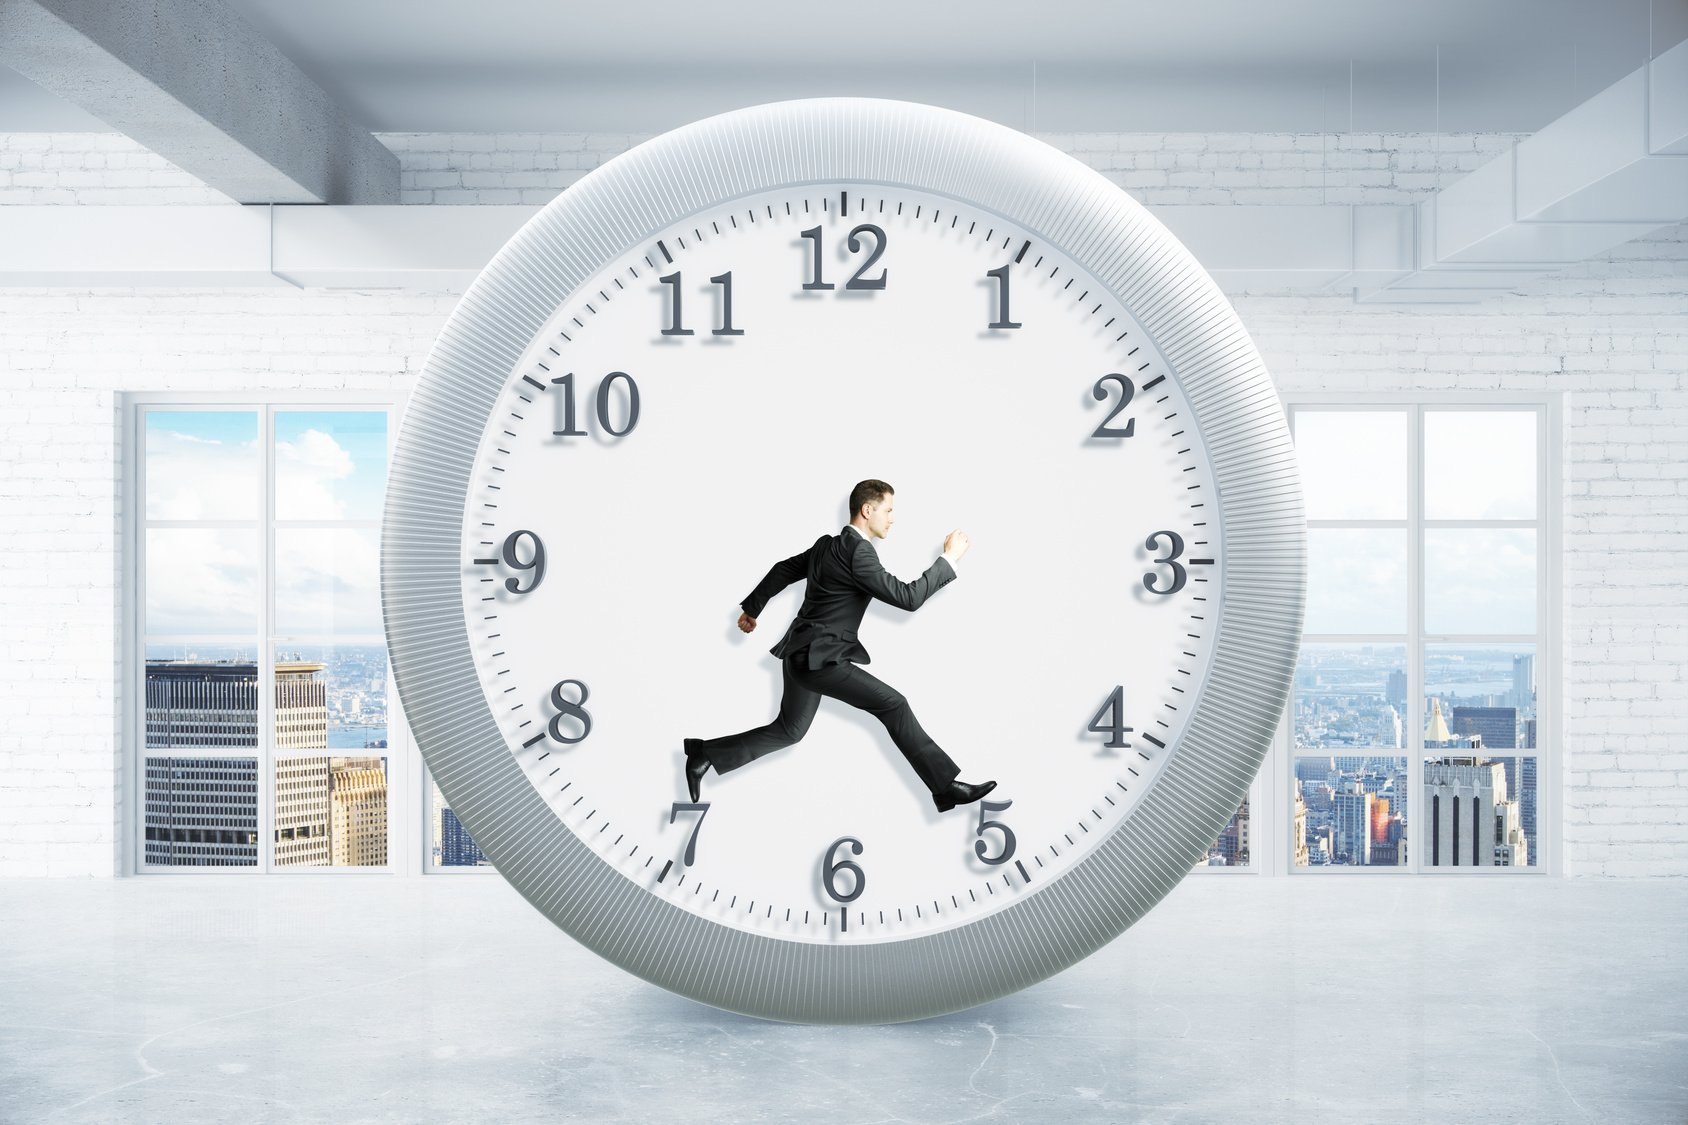 Insurance Company Reviews >> 8 Proven Time Management Tips From Top Business Execs | AllBusiness.com